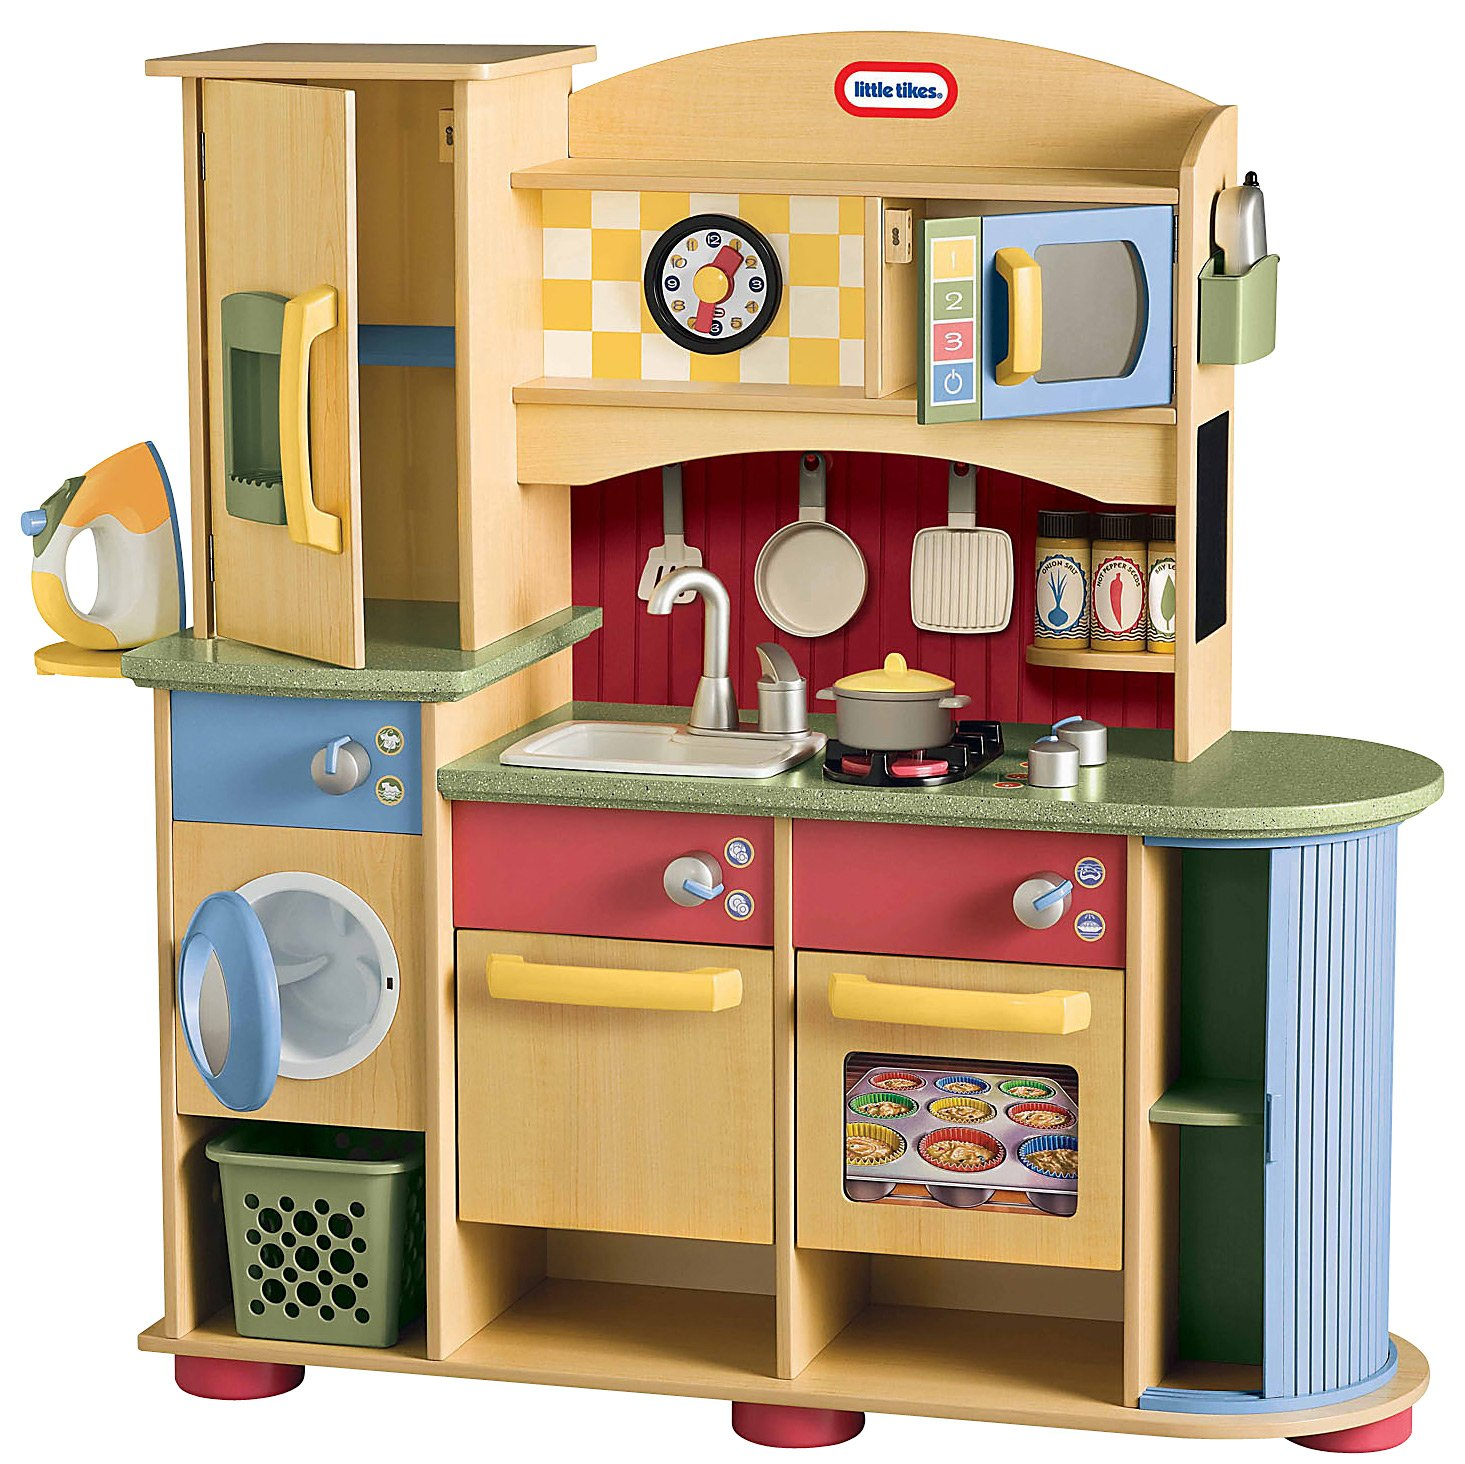 Little tikes deluxe wooden kitchen and laundry center for Toddler kitchen set